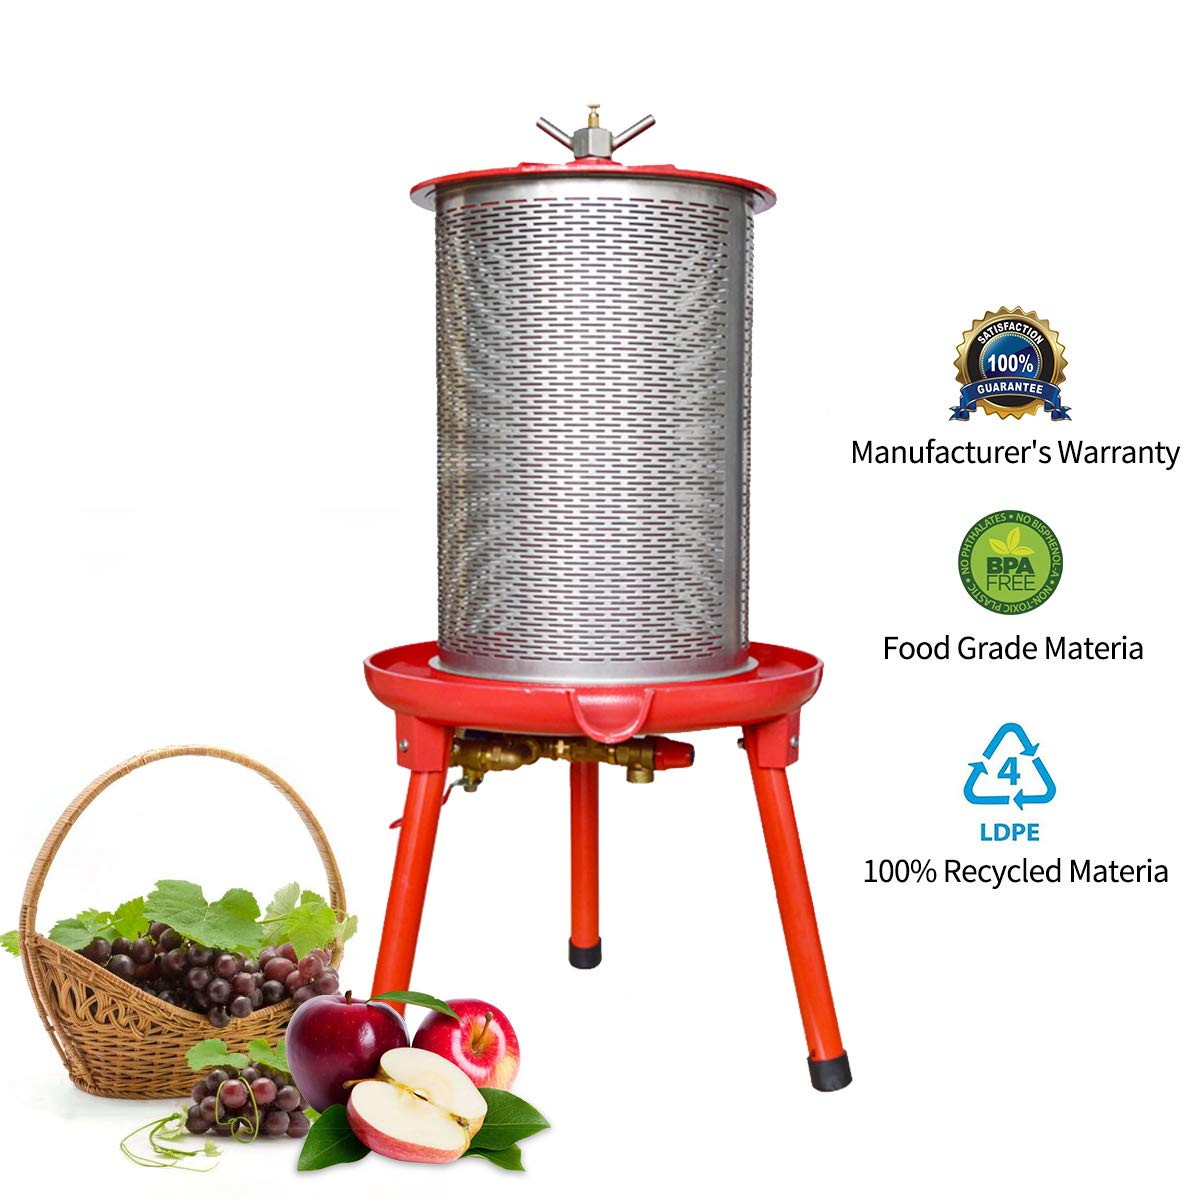 Hydraulic Fruit Wine Press - Electricity-Free/Water-powered Cider Wine Bladder Press, Natural Juice Making(5.3 Gallon, with Filter Bag/Splash Guard) by EJWOX